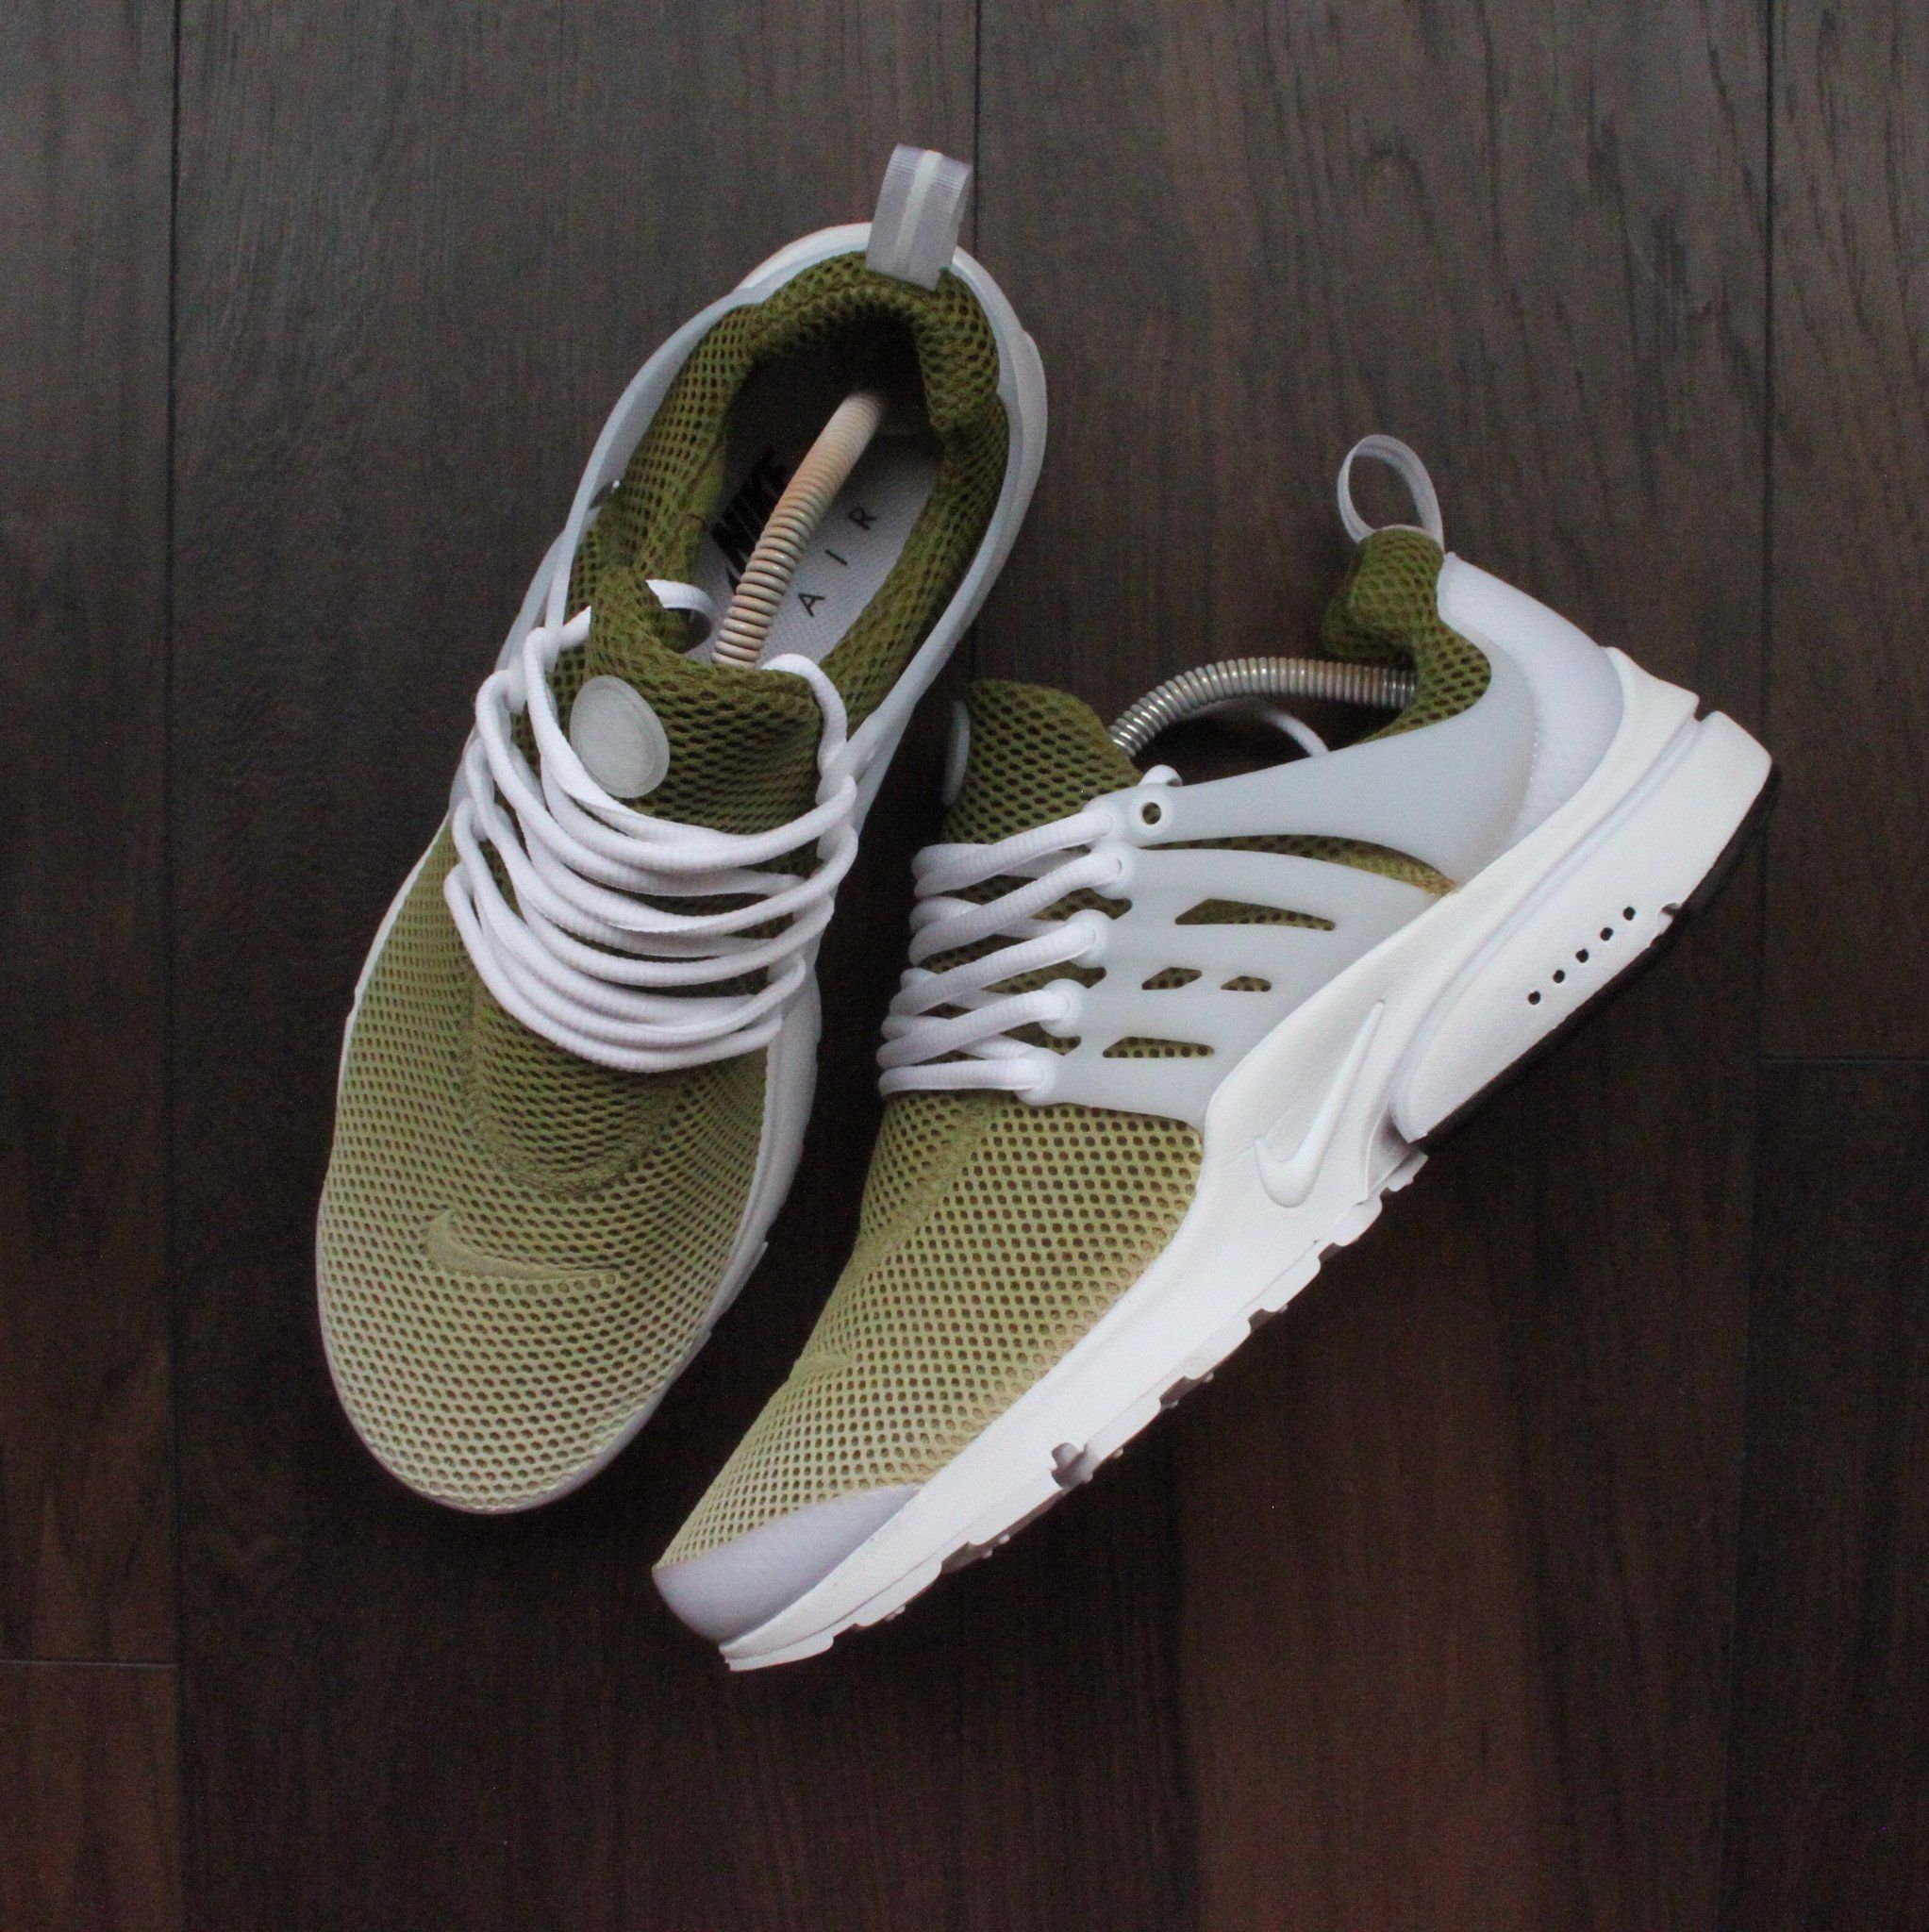 on sale 8e612 67e34 Custom Khaki Nike Air presto Men's And Womens Shoes ...